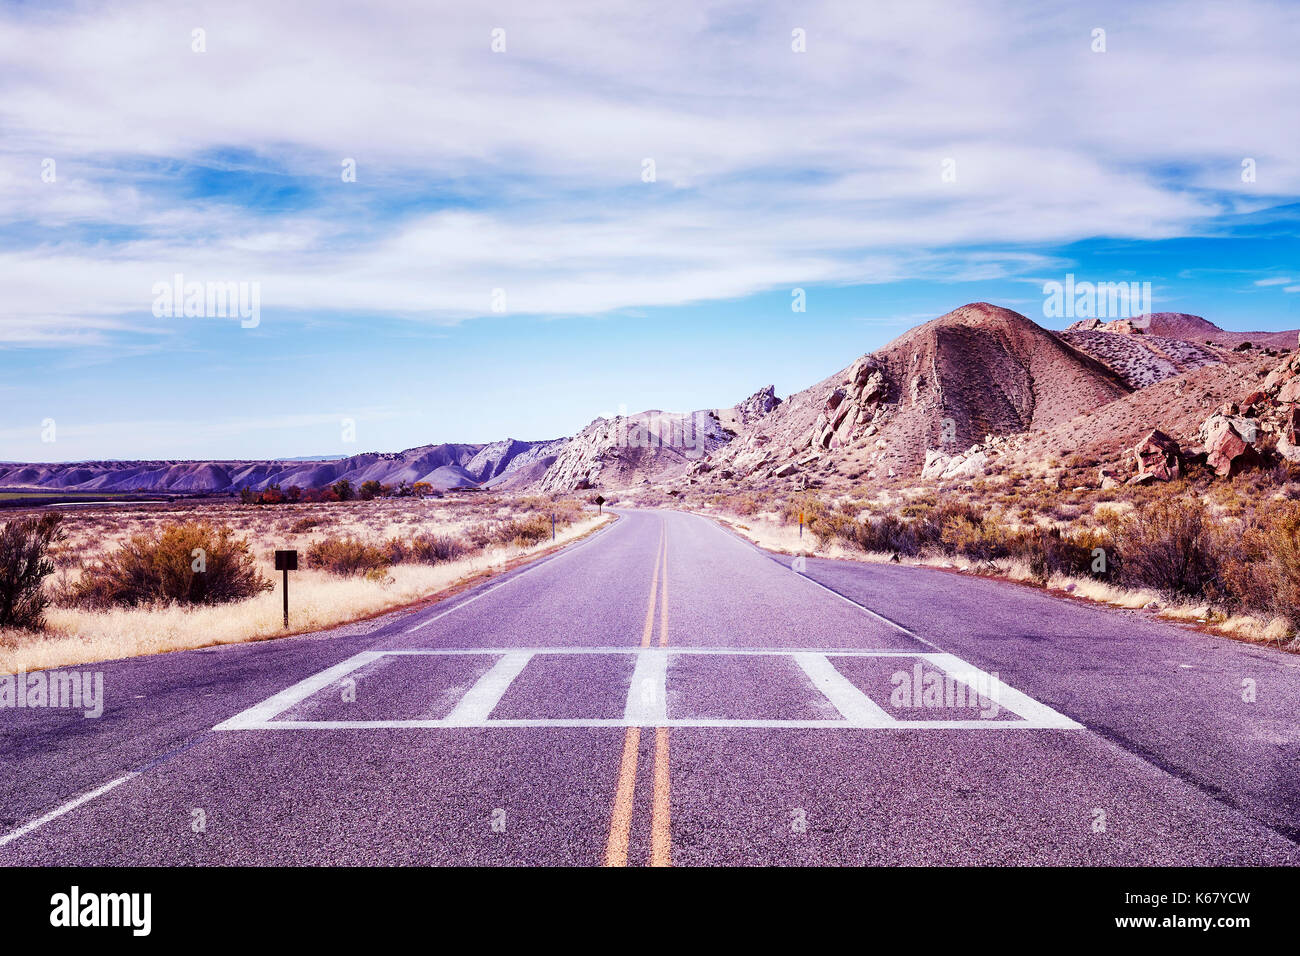 Vintage toned picture of a scenic deserted road, USA. - Stock Image